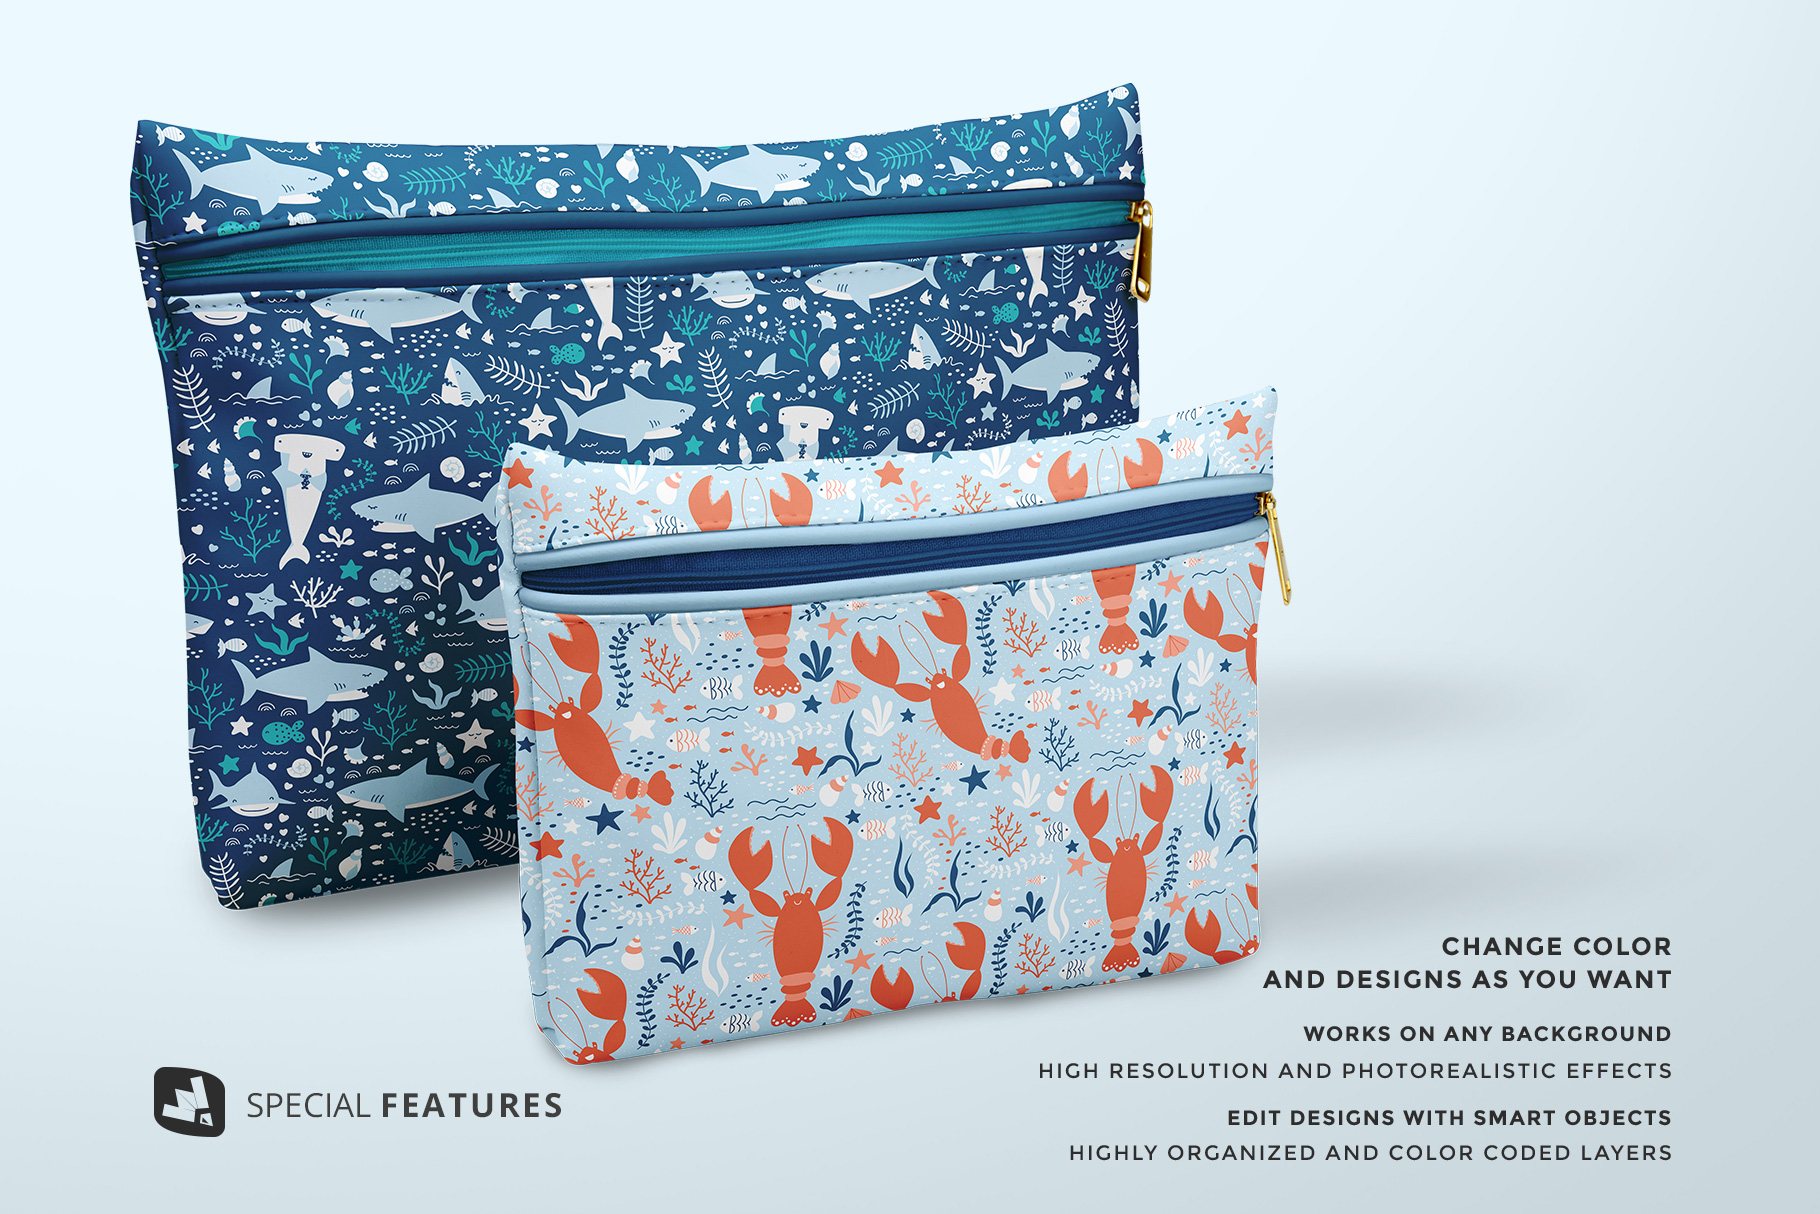 special features of the set of travel bathroom pouches mockup